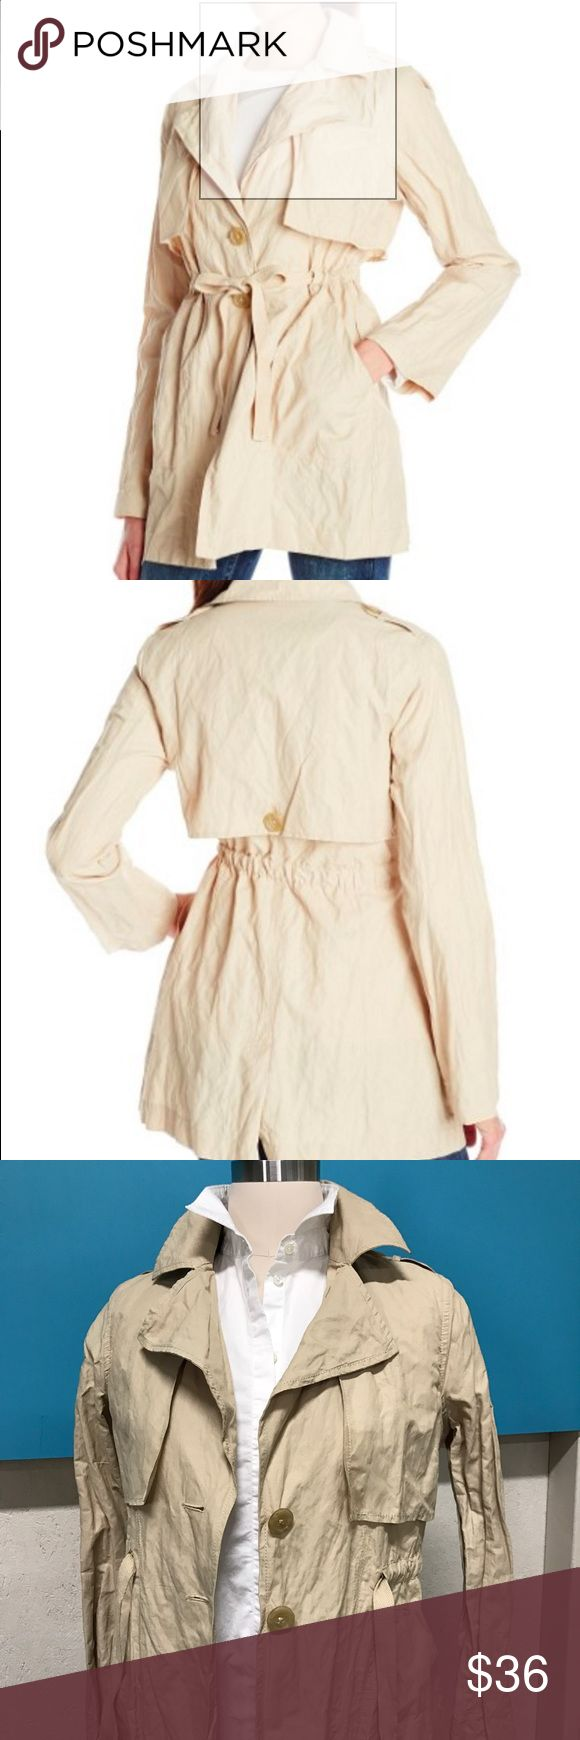 Sanctuary Beige Khaki Trench Coat Great light weight crinkle casual style trench coat. Great for tossing on with a tee and a pair of jeans. Just the right weight for transitioning into spring. Brand New with Tags Sanctuary Jackets & Coats Trench Coats